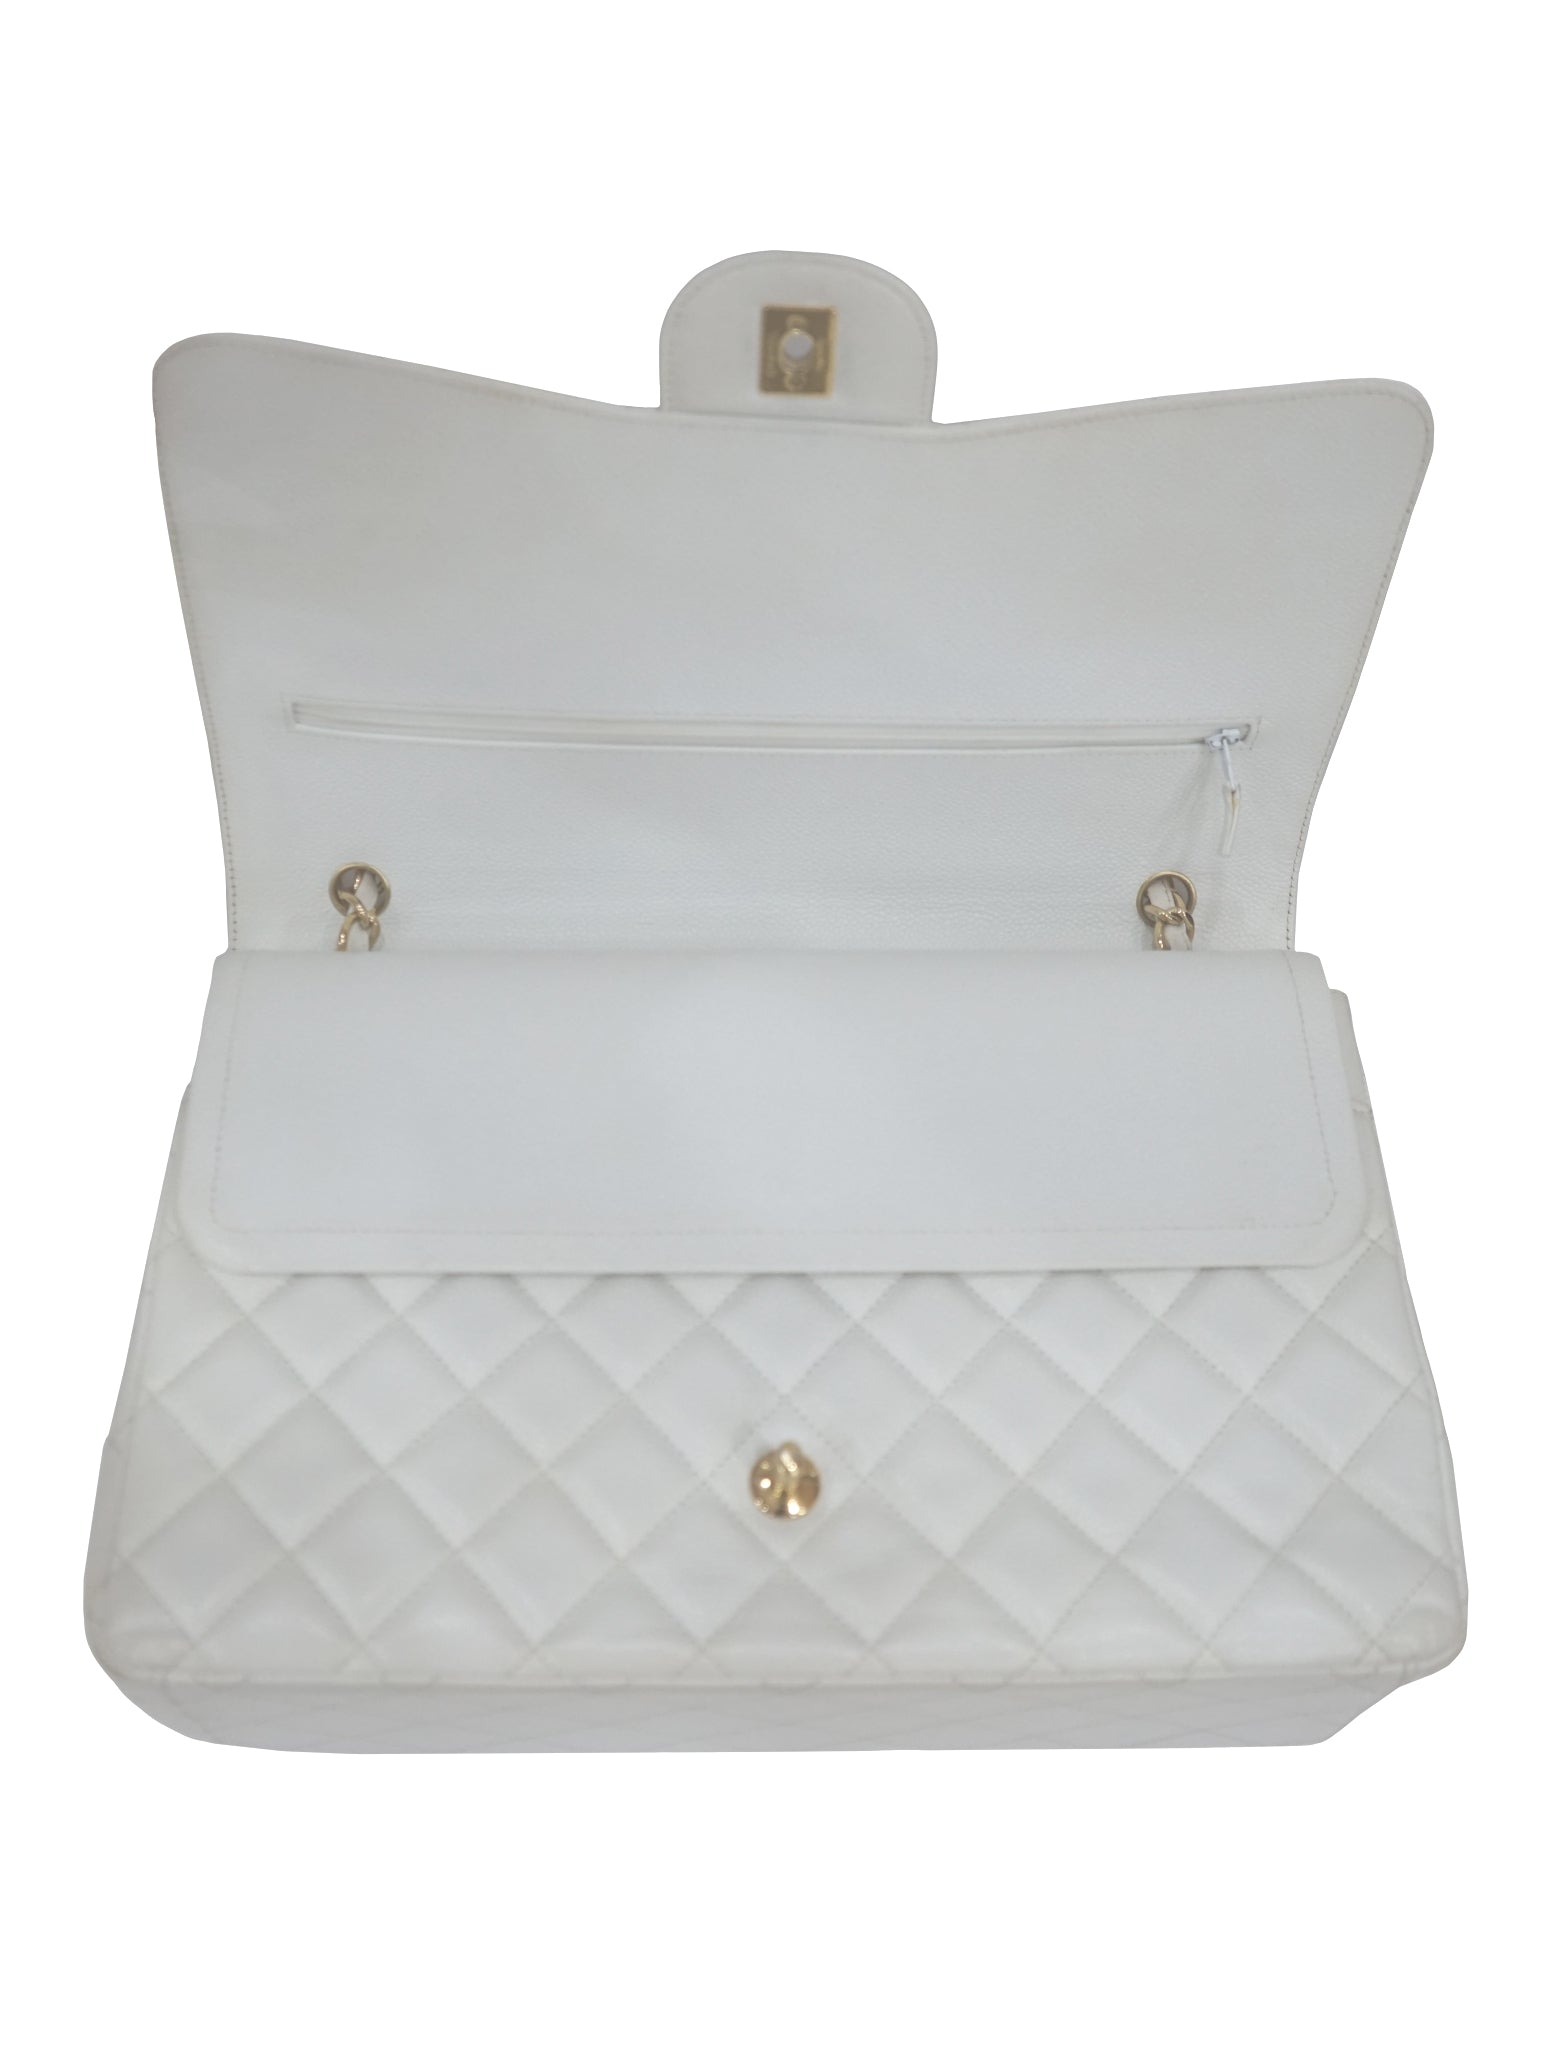 QUILTED CAVIAR LEATHER CLASSIC DOUBLE FLAP